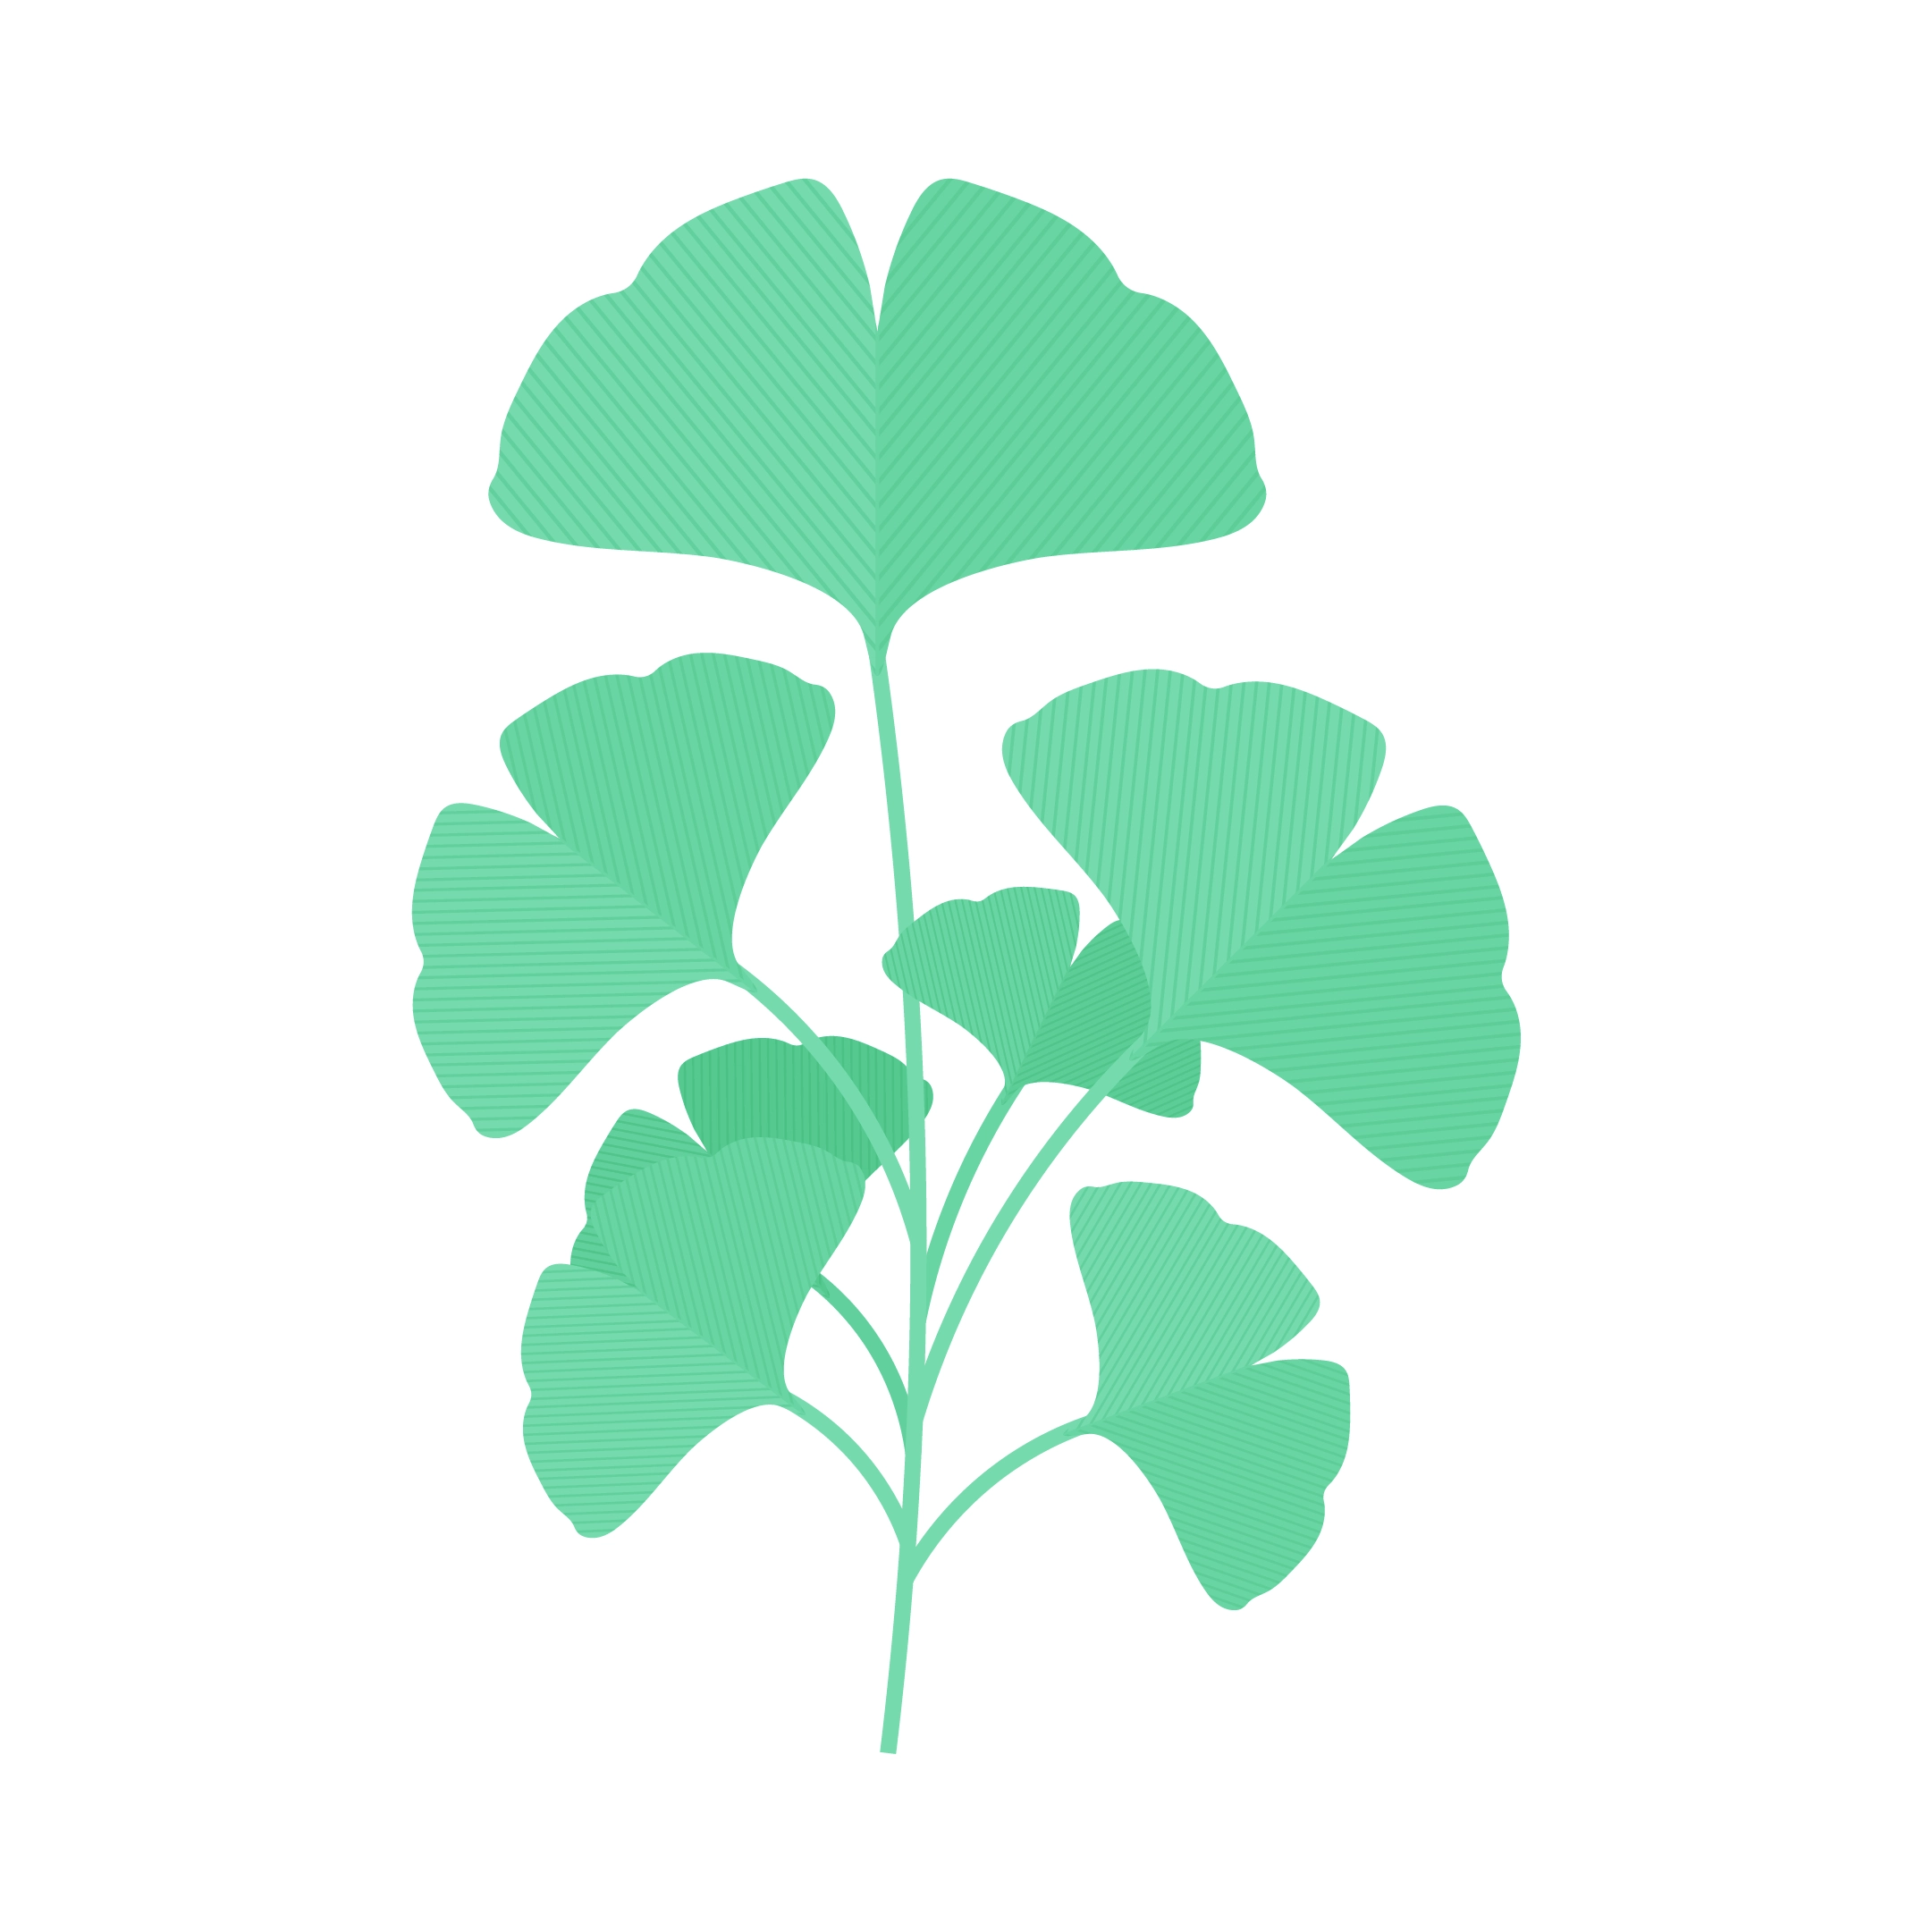 Vector illustration of a Ginkgo Biloba branch in flat design style